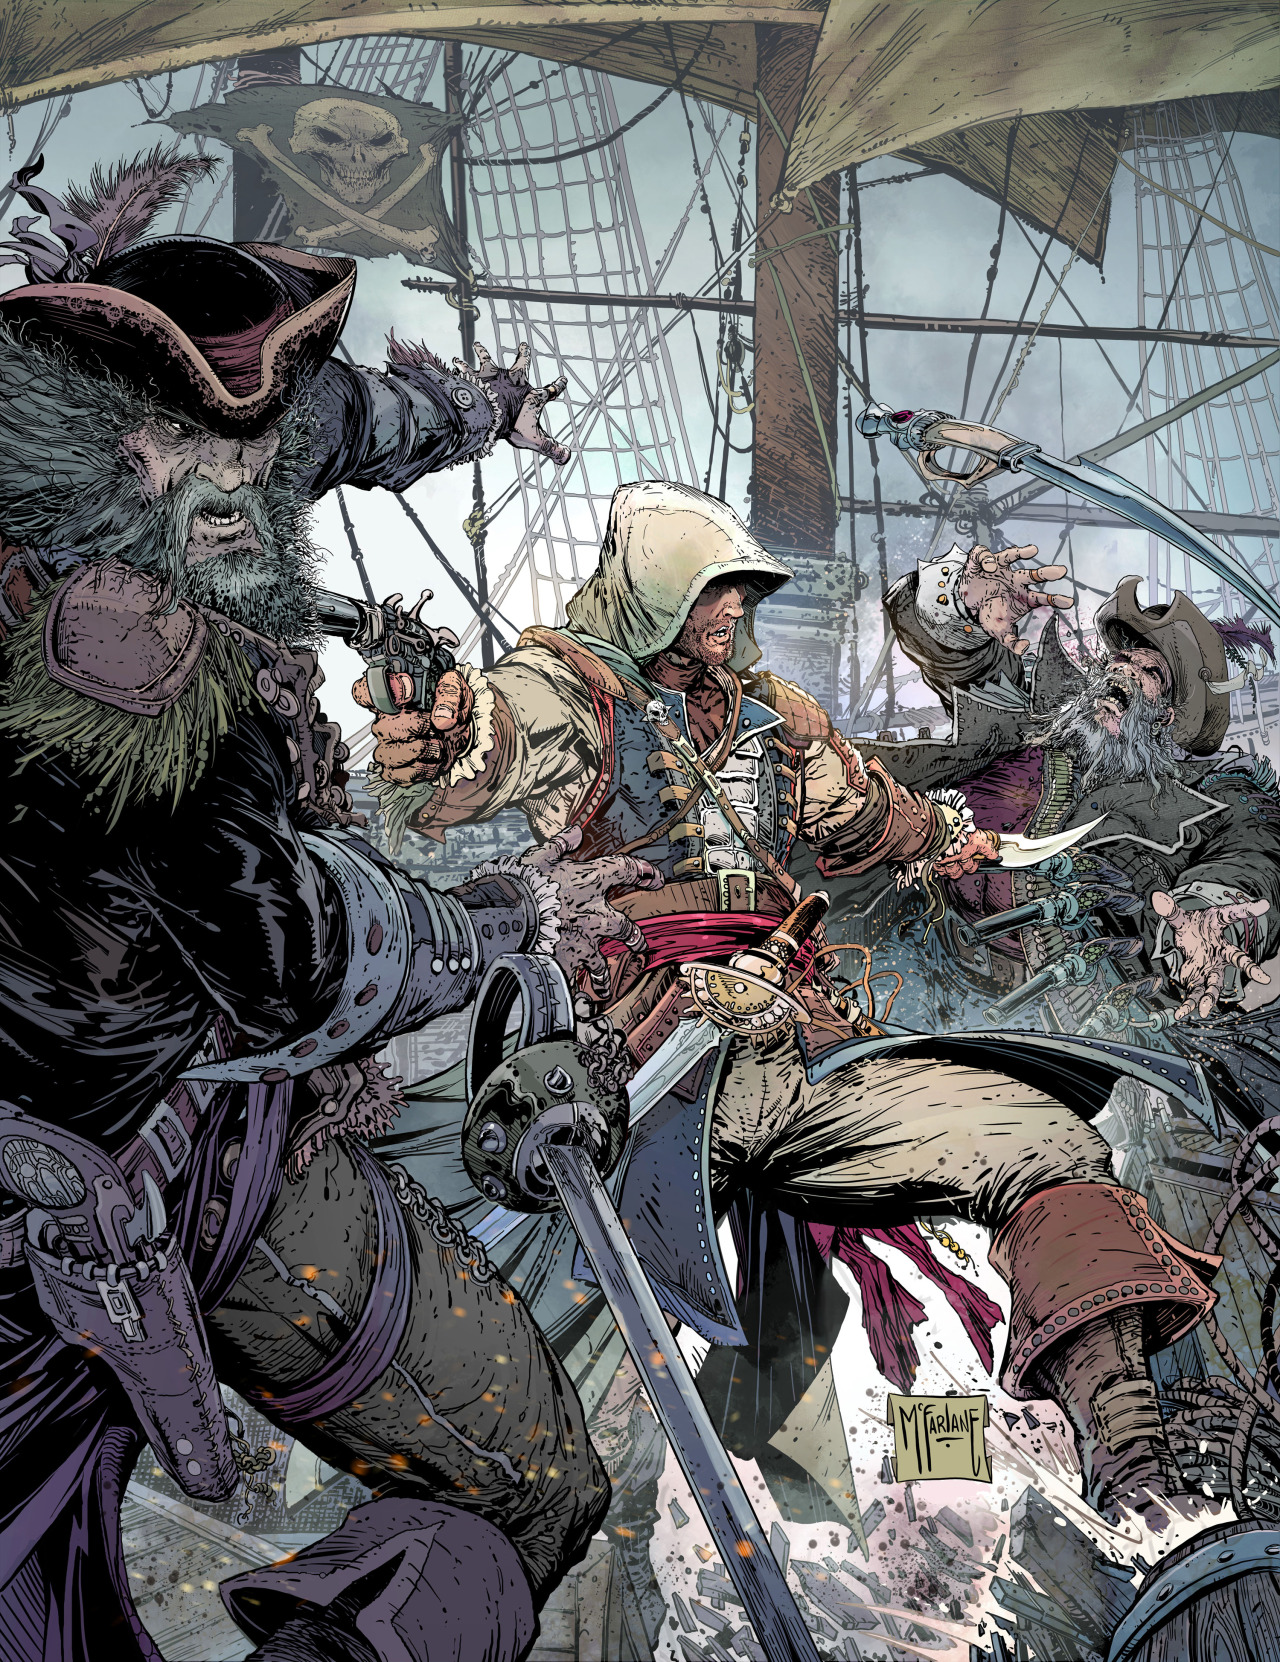 Biggus [Dickus] Assassin's Creed IV: Black Flag poster by Todd McFarlane Descarga aquí con mejor resolución: http://image.noelshack.com/fichiers/2013/13/1364498443-aciv-black-flag-x-todd-mcfarlane.jpg